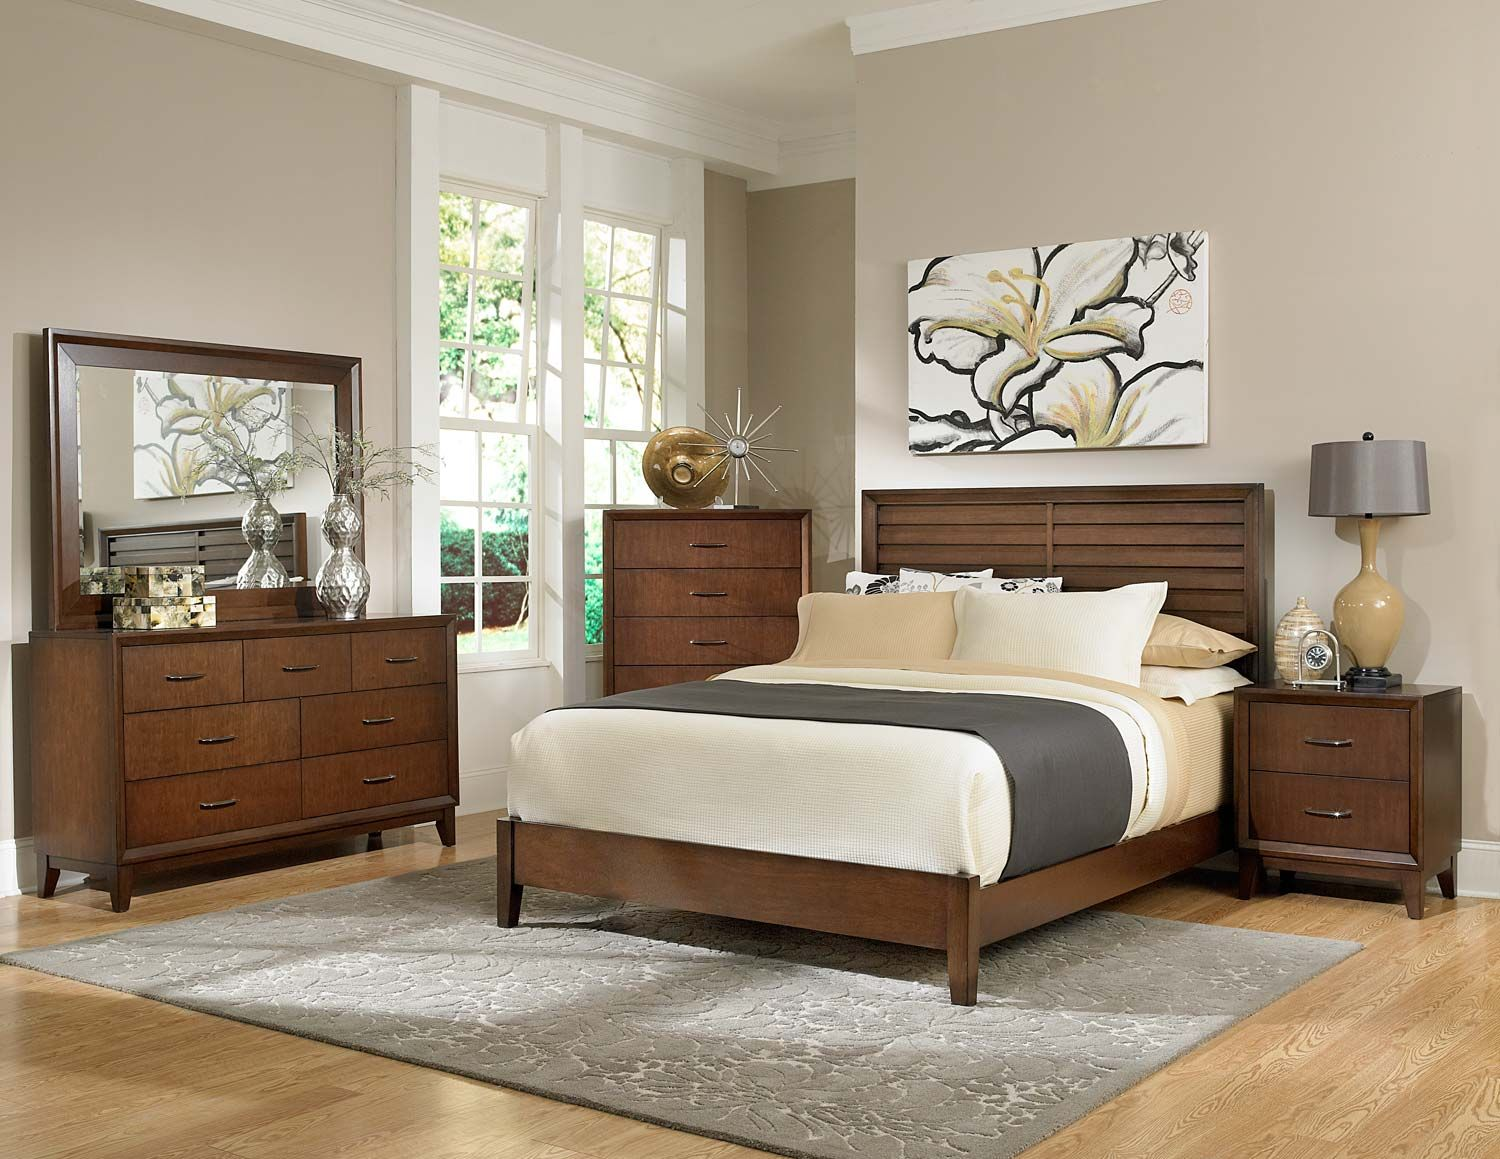 Homelegance Oliver Bedroom Set - Warm Brown Cherry - Simplicity ...